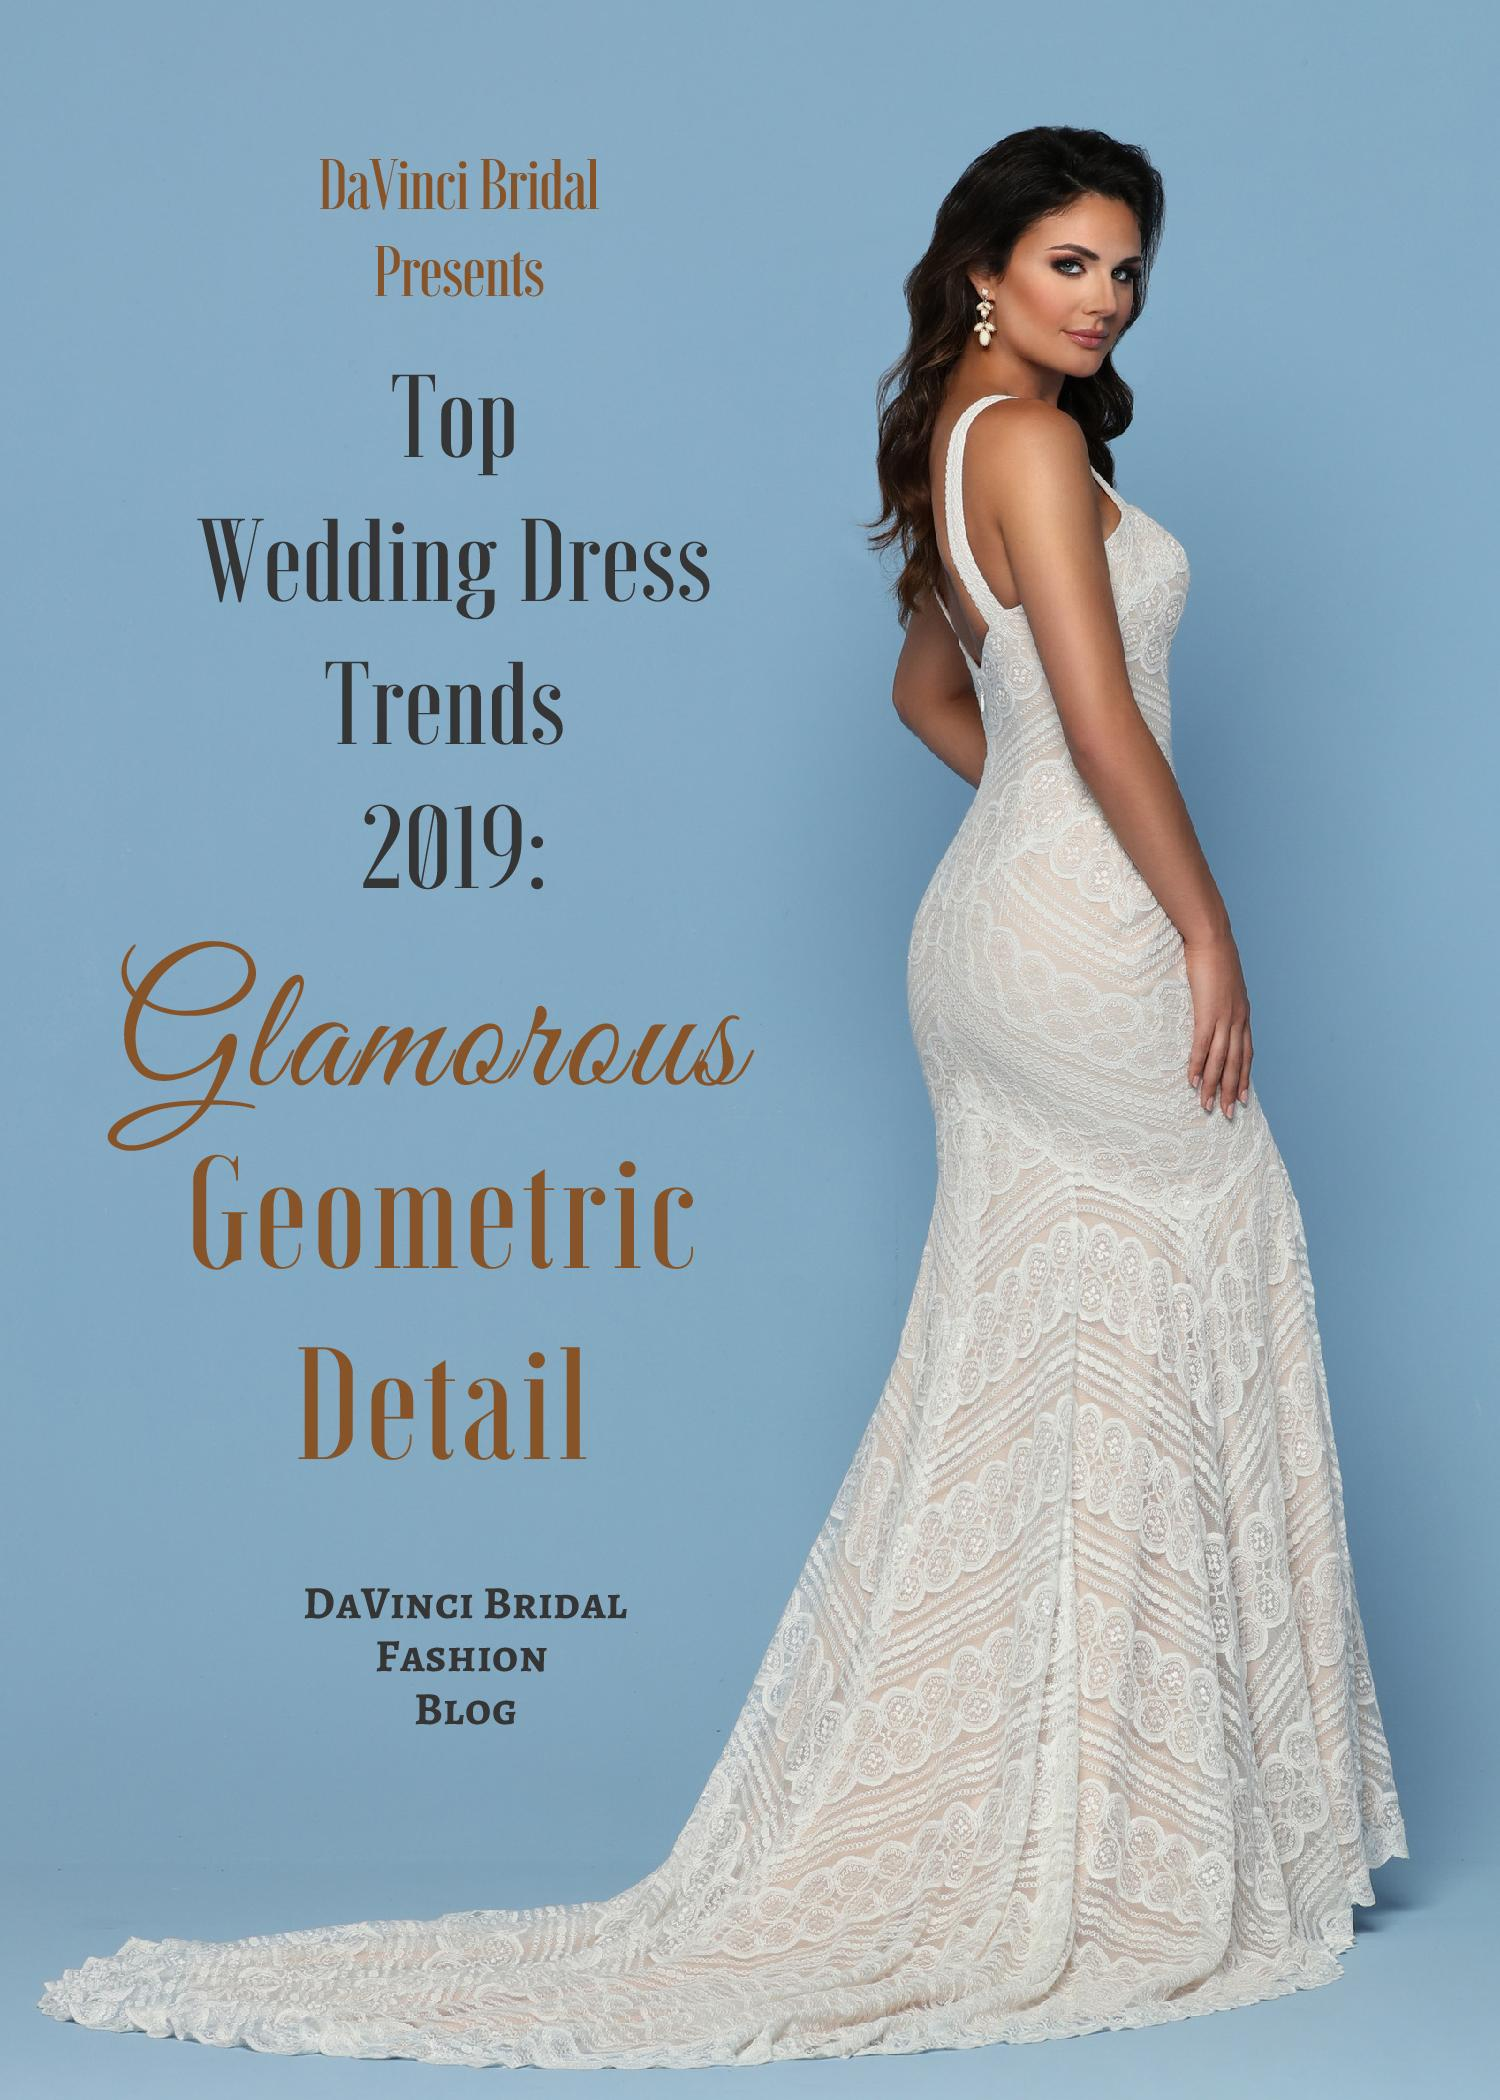 f596e13ae49 Top Wedding Dress Trends for 2019 Wedding Gowns with Geometric Details – DaVinci  Bridal Fashion Blog